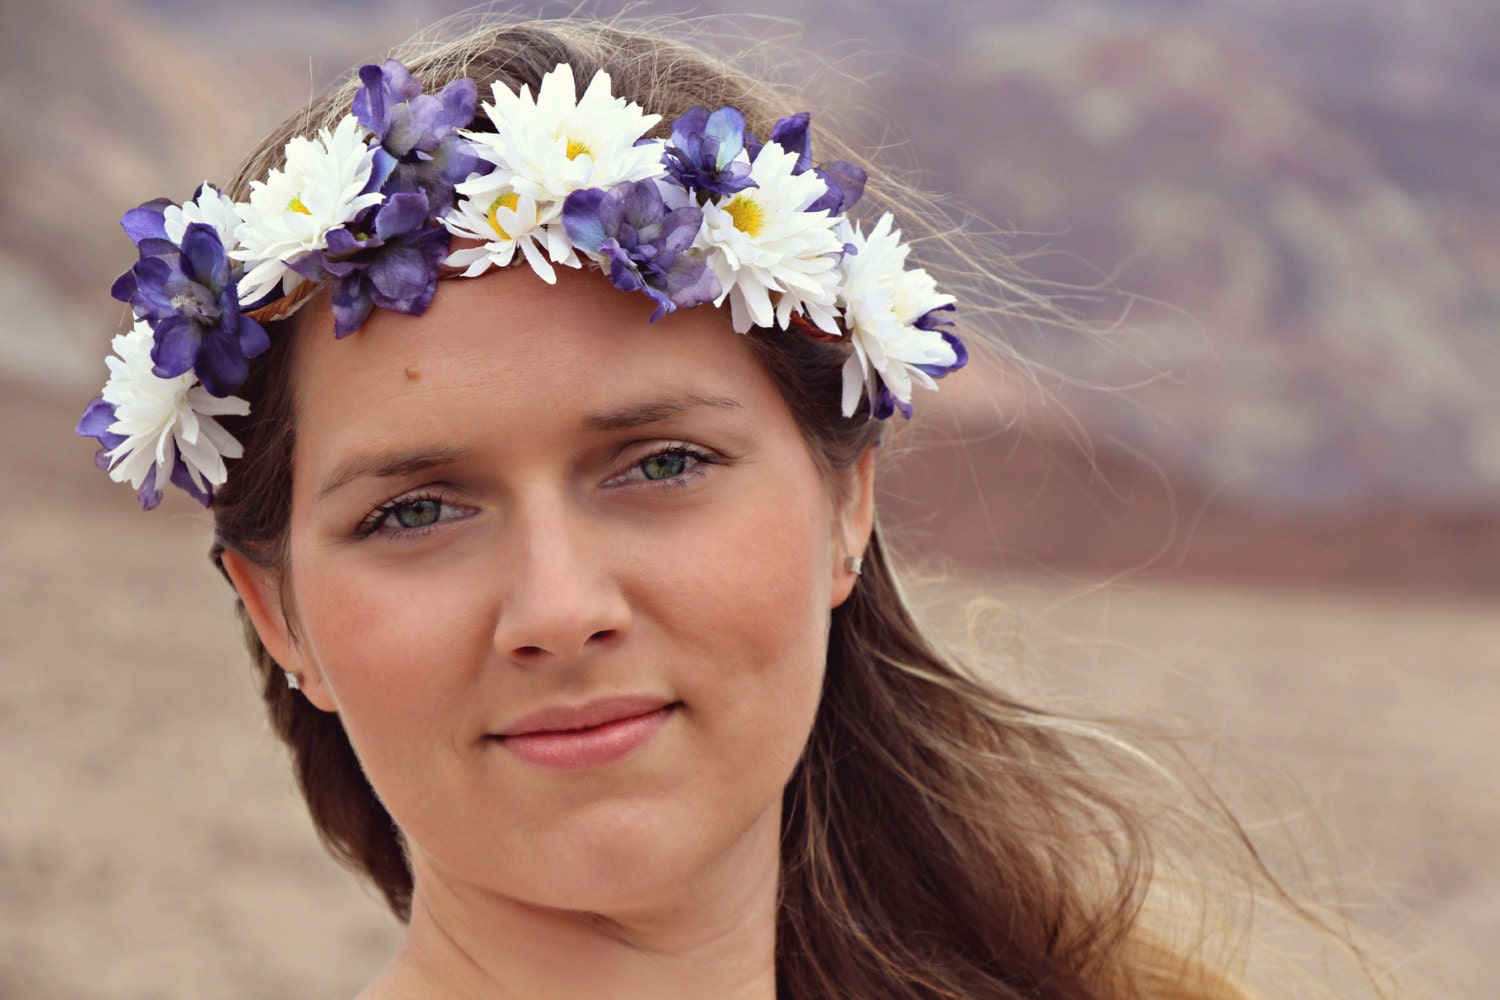 Sale field of daisies spring daisy floral crown floral wreath sale field of daisies spring daisy floral crown floral wreath violets hippie flower crown boho style coachella wedding izmirmasajfo